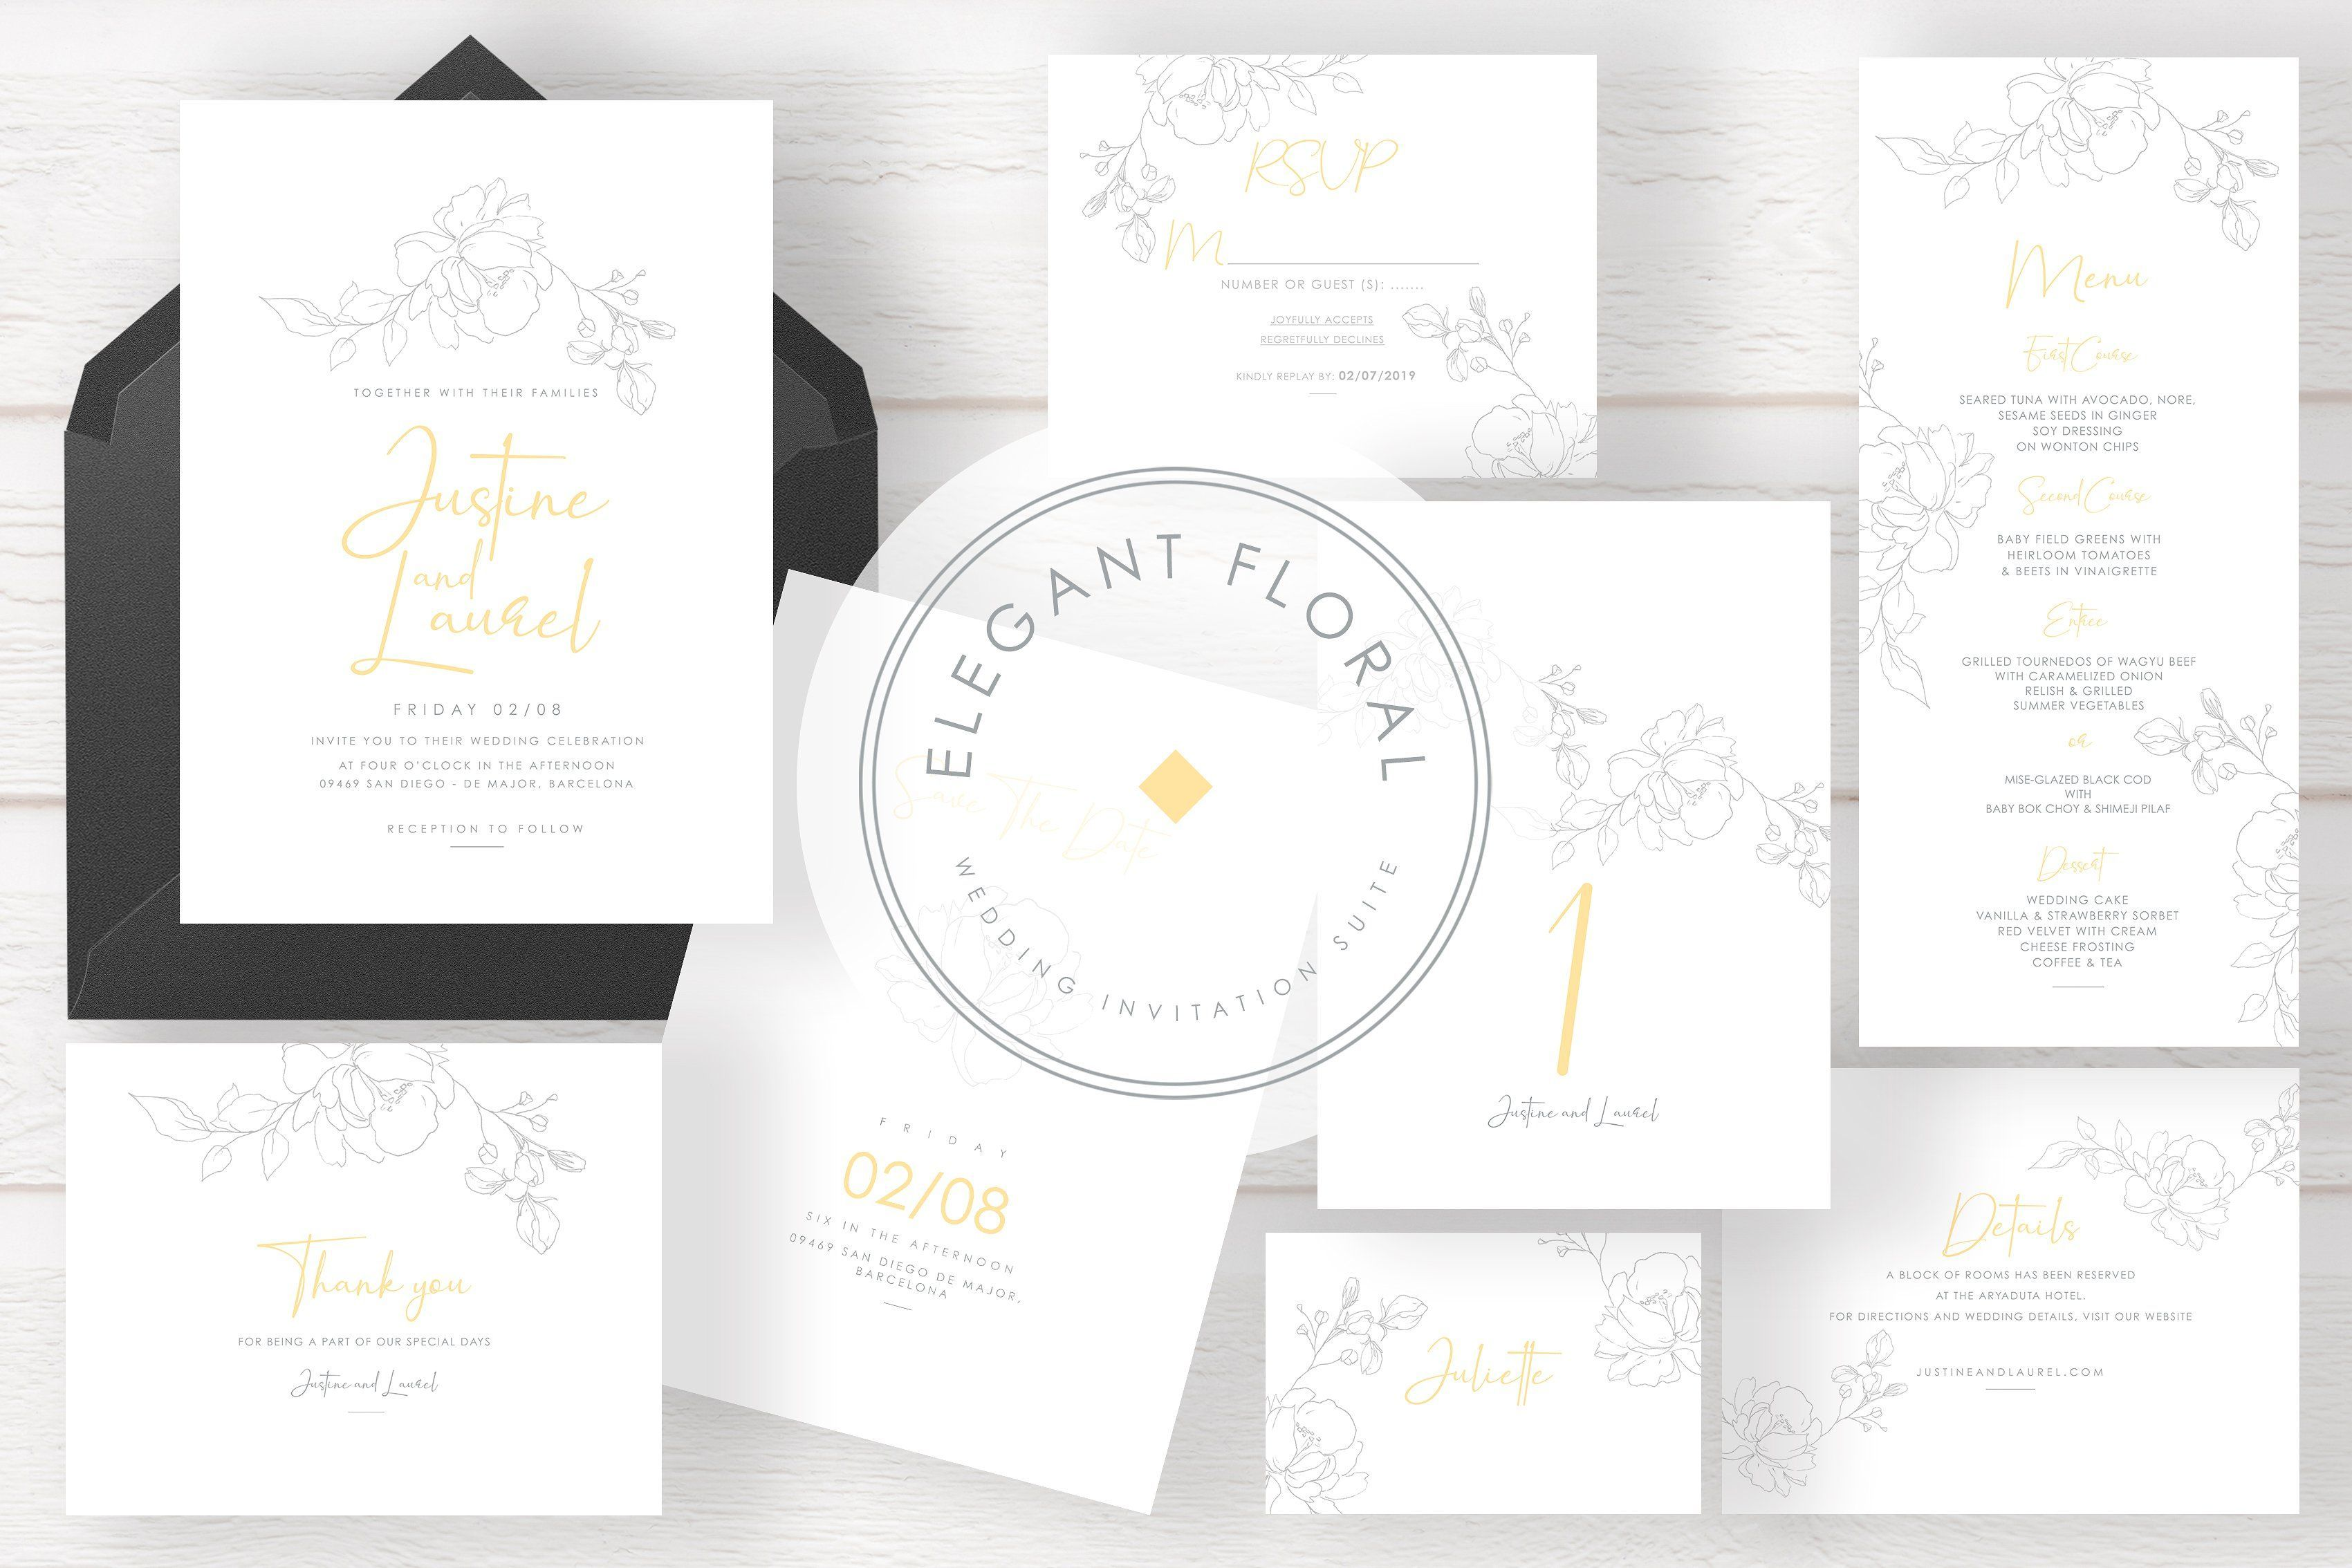 Elegant Floral Wedding Invitation Suite A Watercolor Leaf Themed